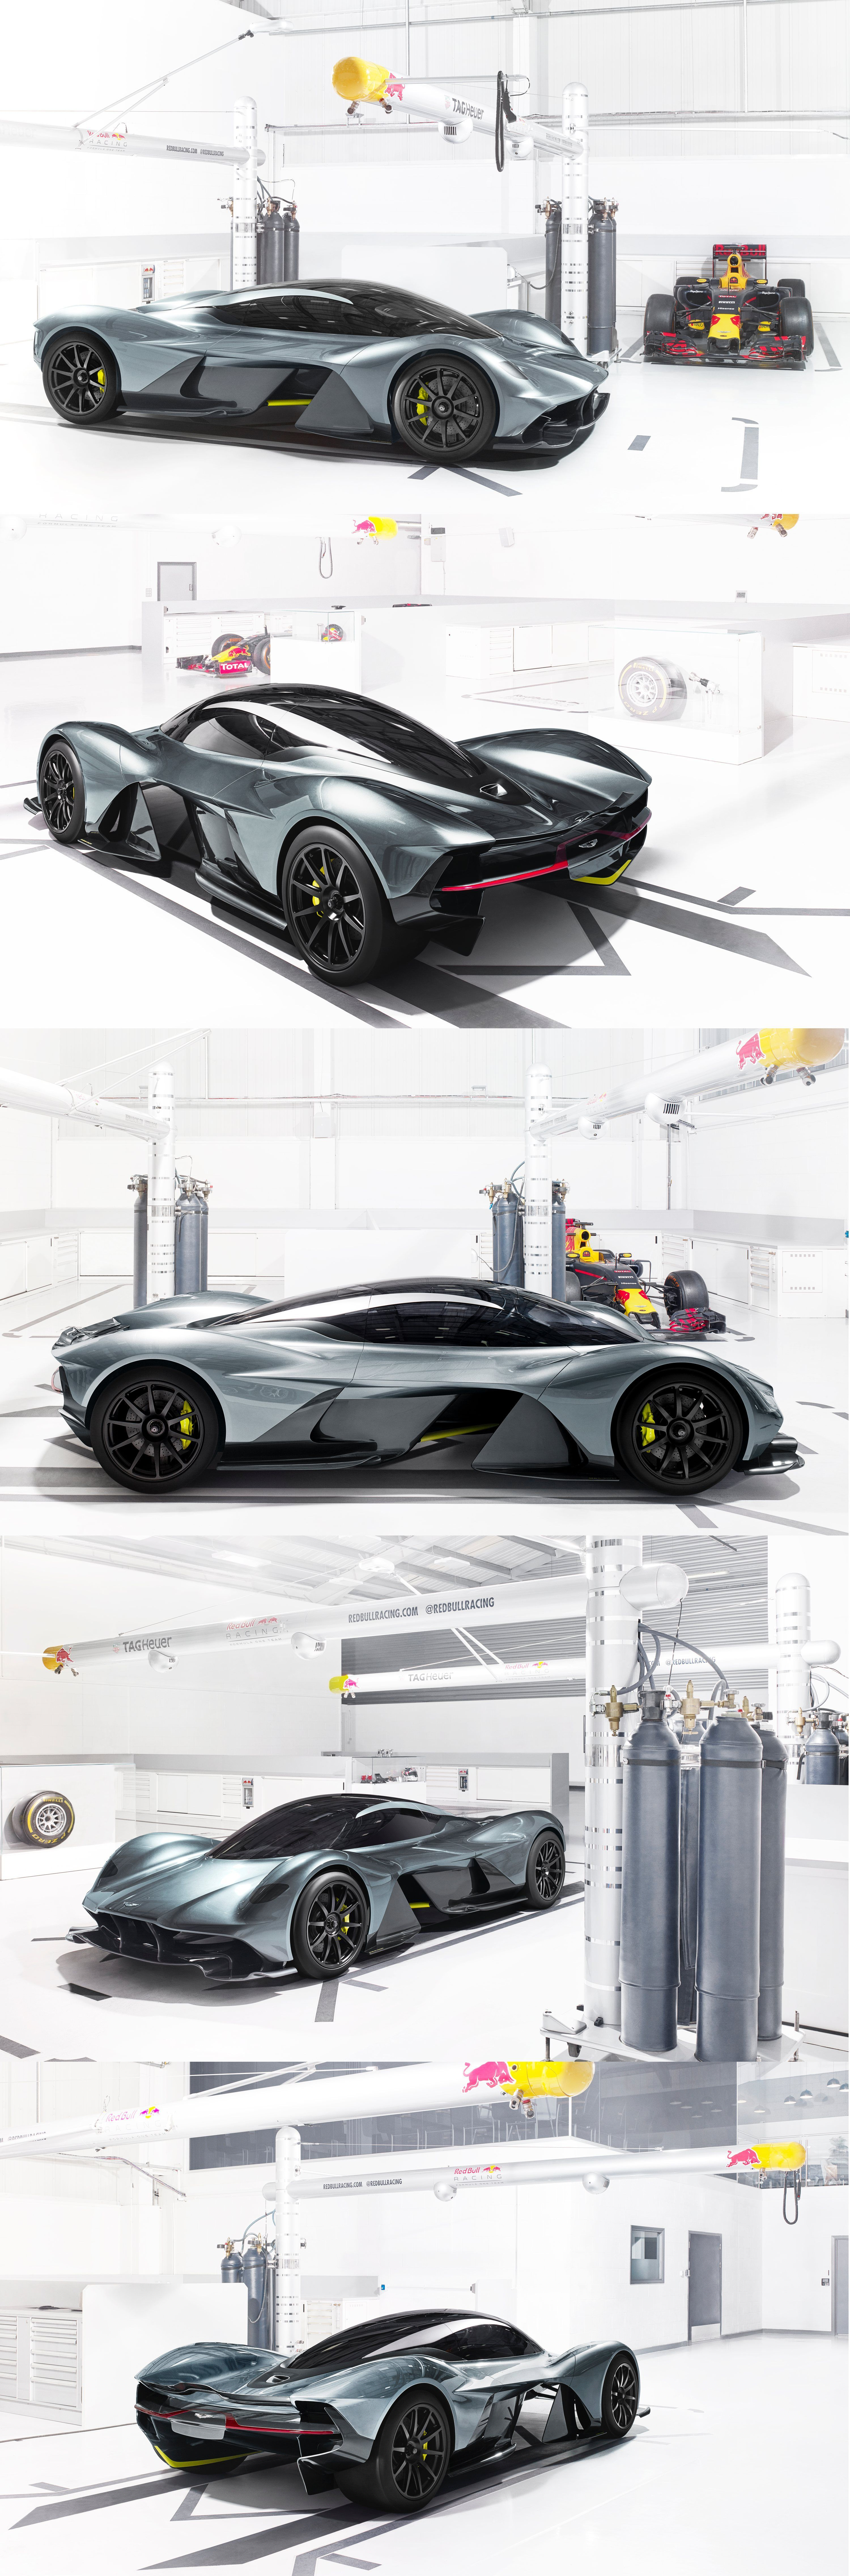 Aston Martin Am Rb 001 Meet Aston Martin And Red Bull Racing S